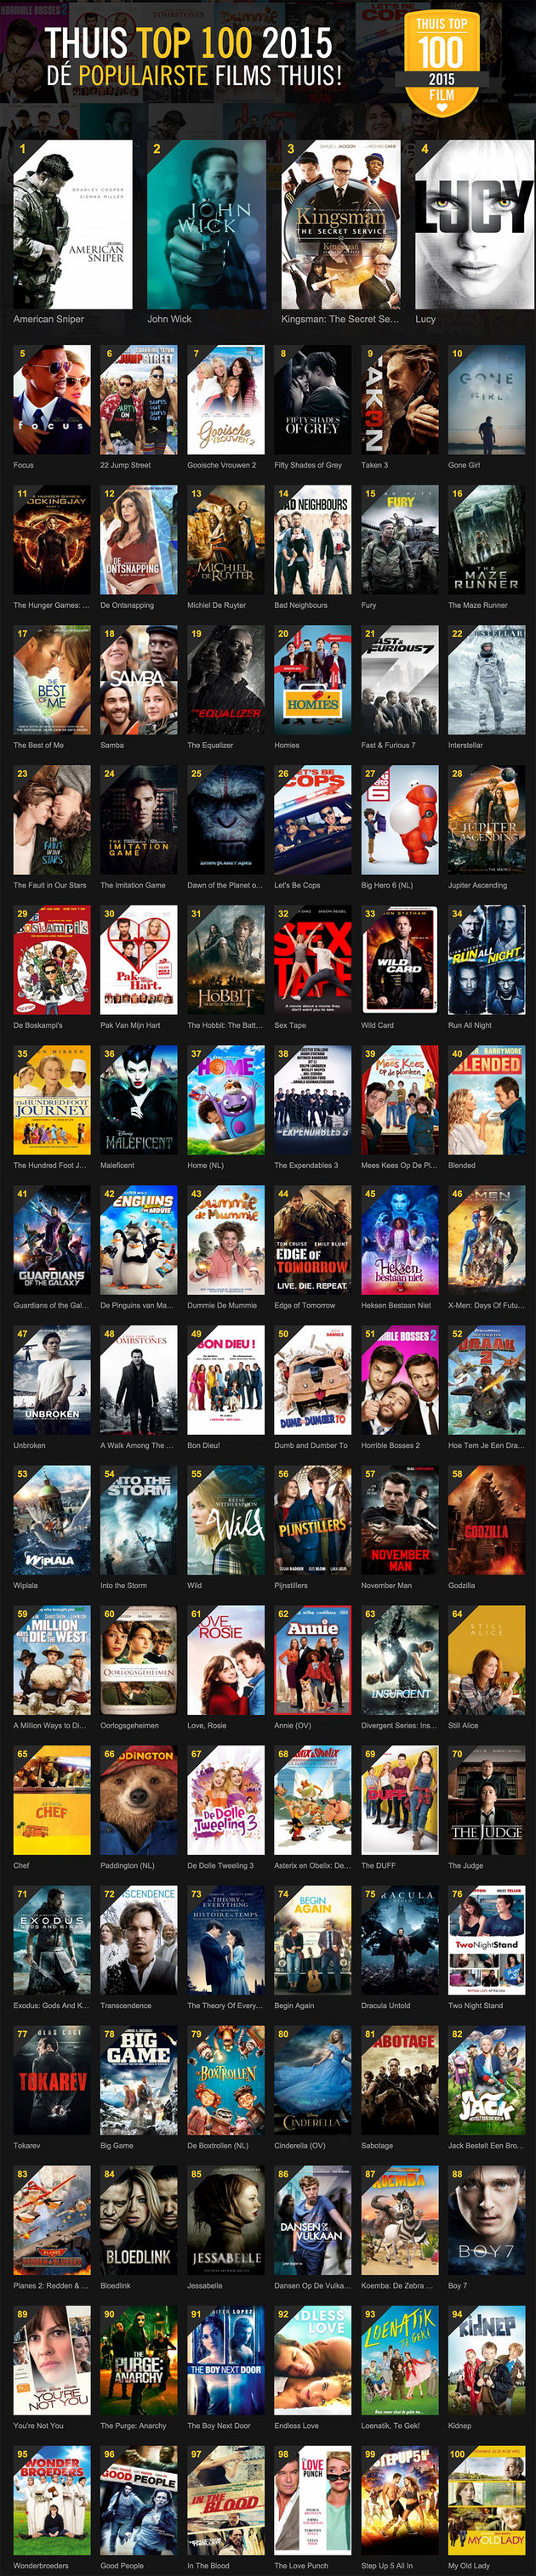 pathe-thuis-top-100